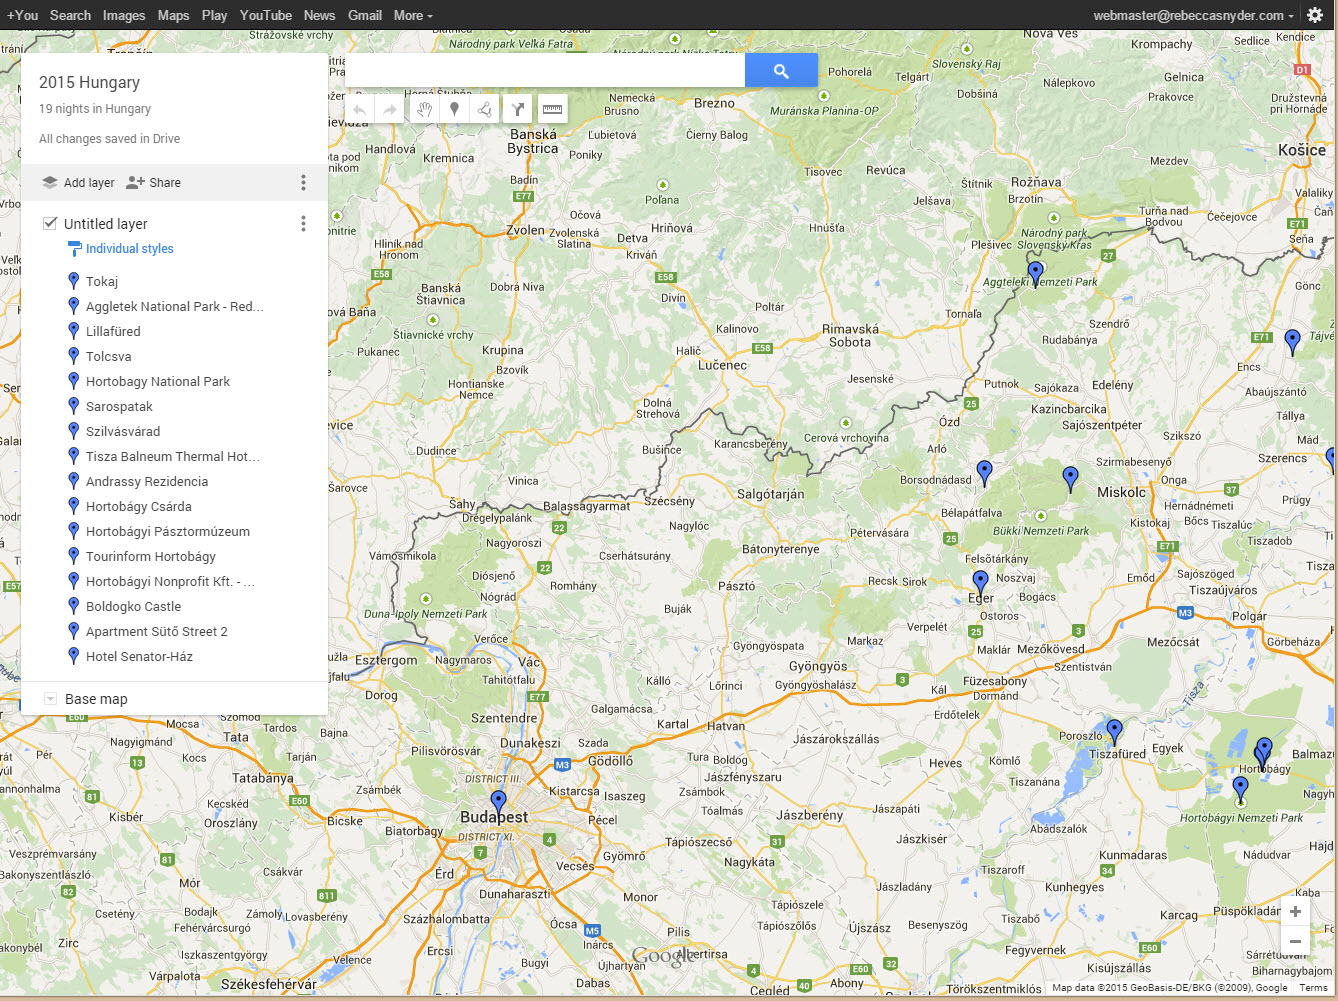 How to Take Your Google Map With You rebeccasnydercom